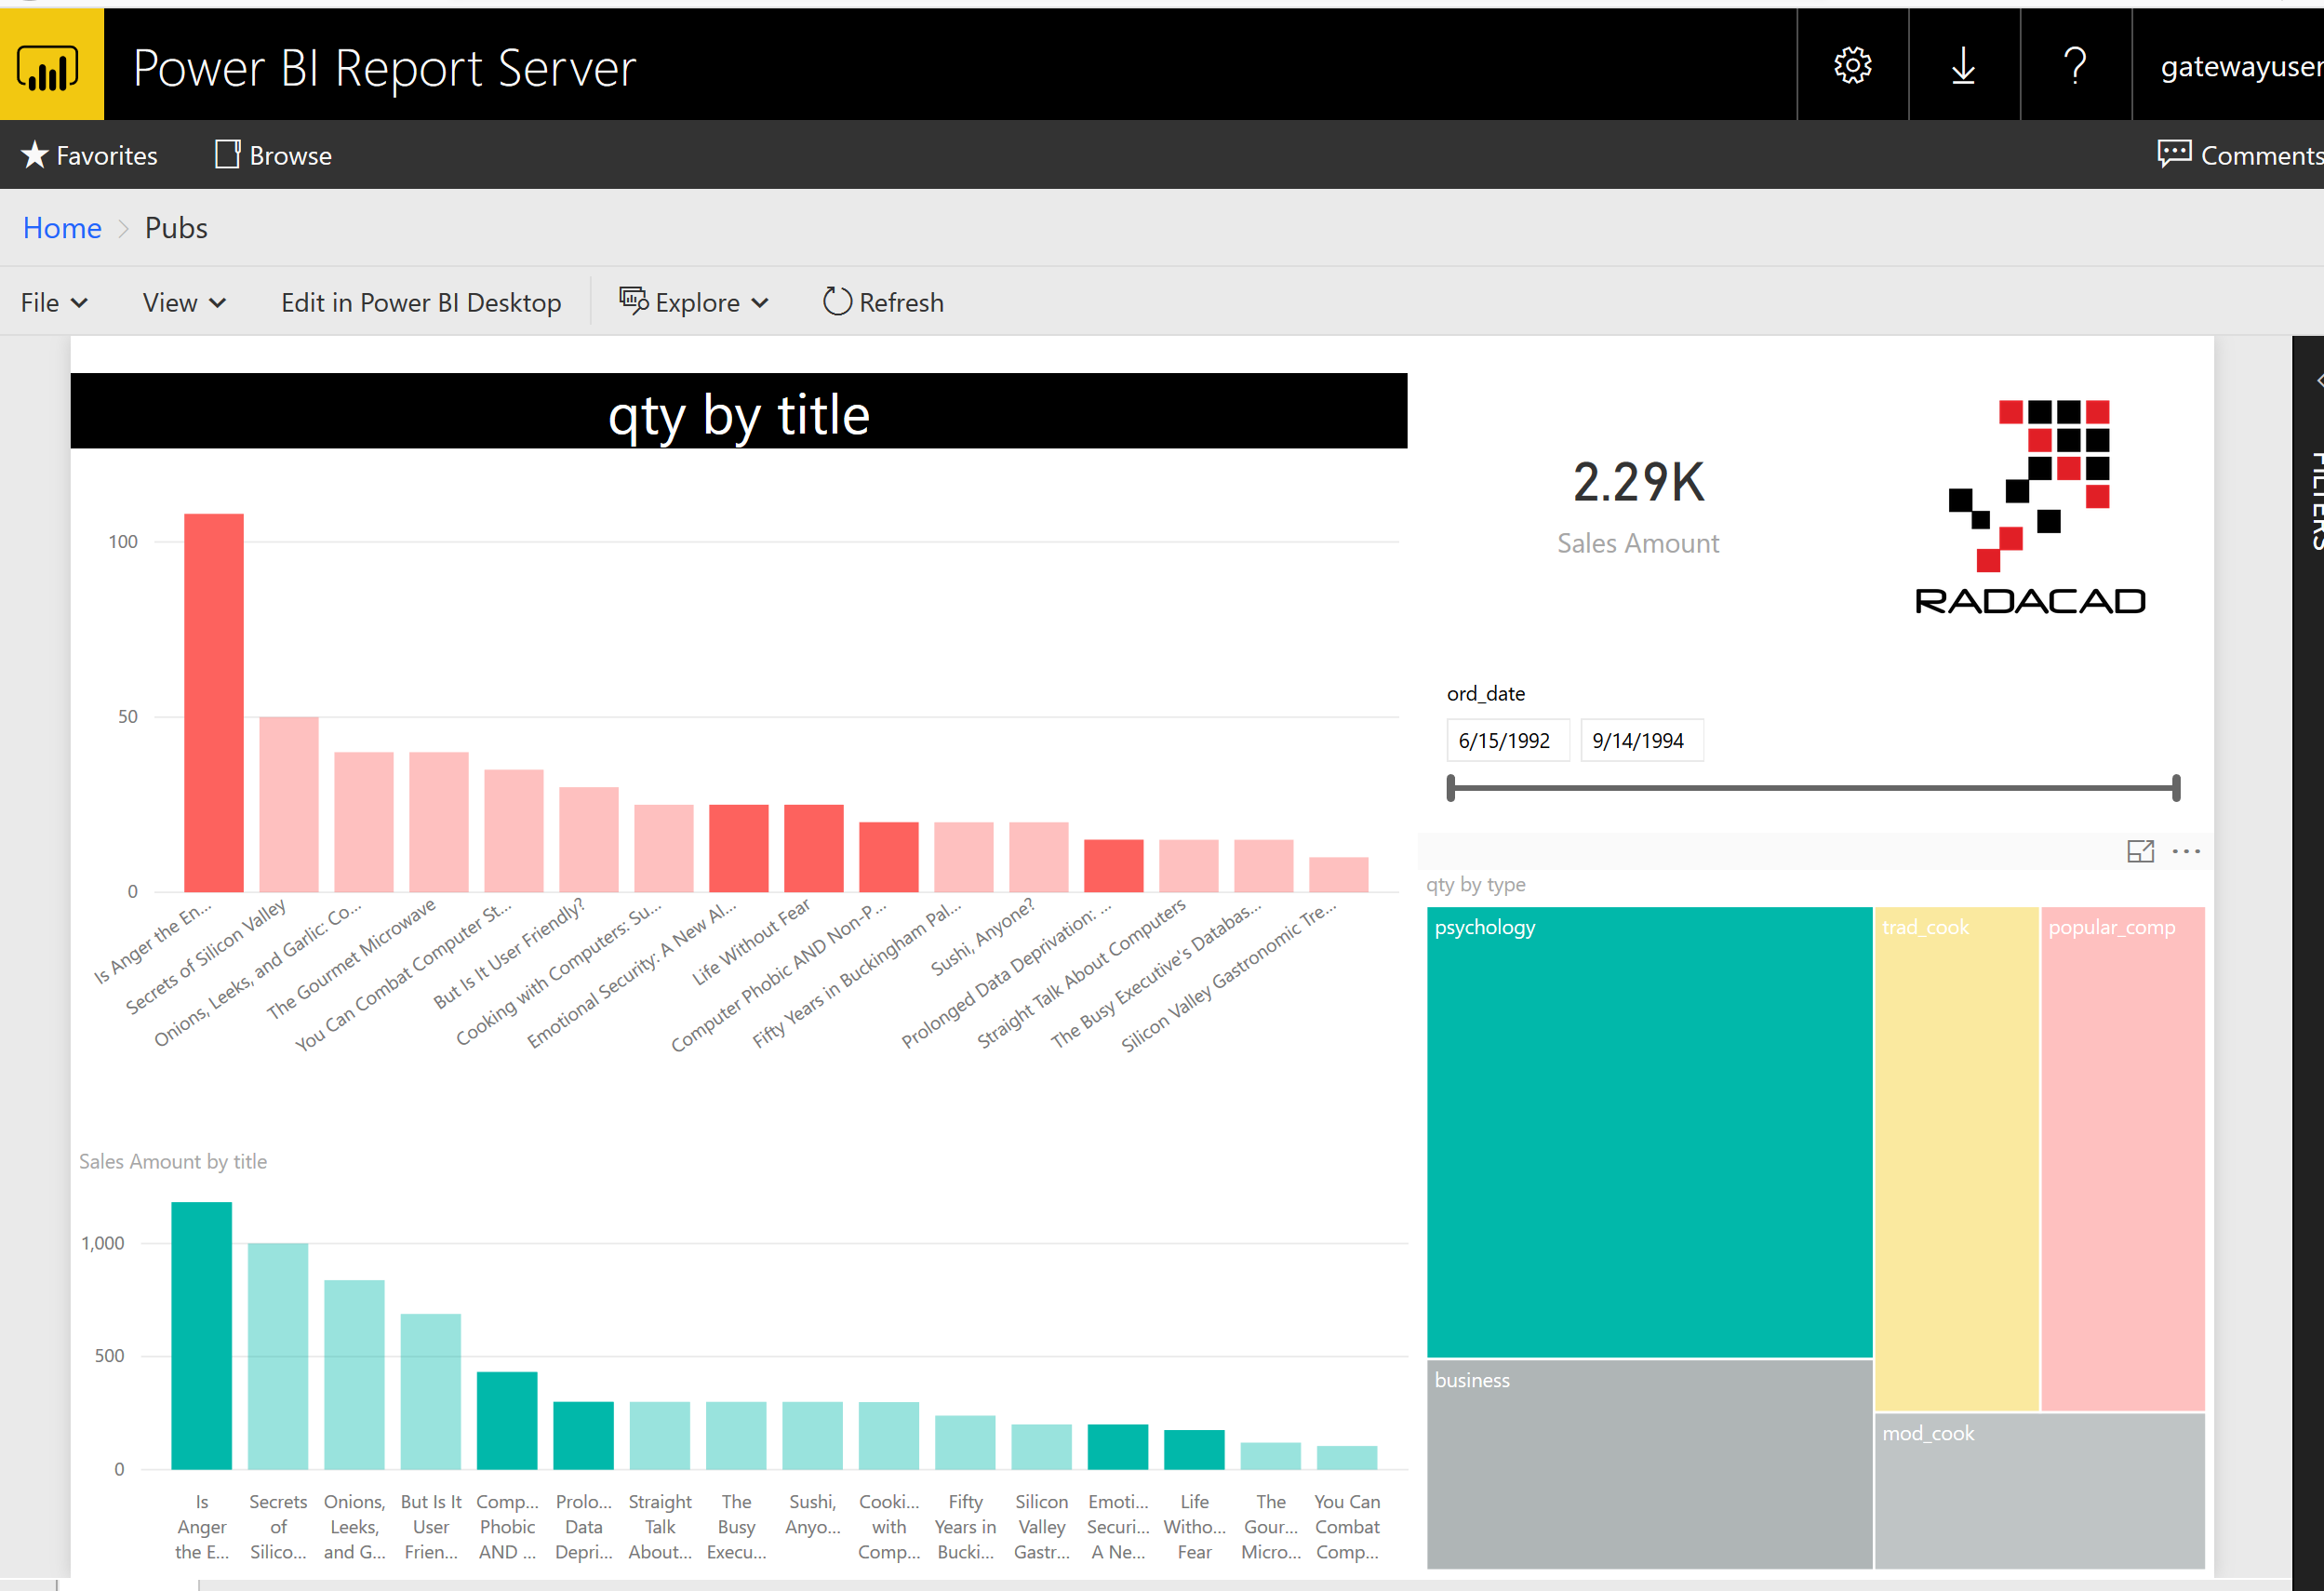 Power BI Report Server